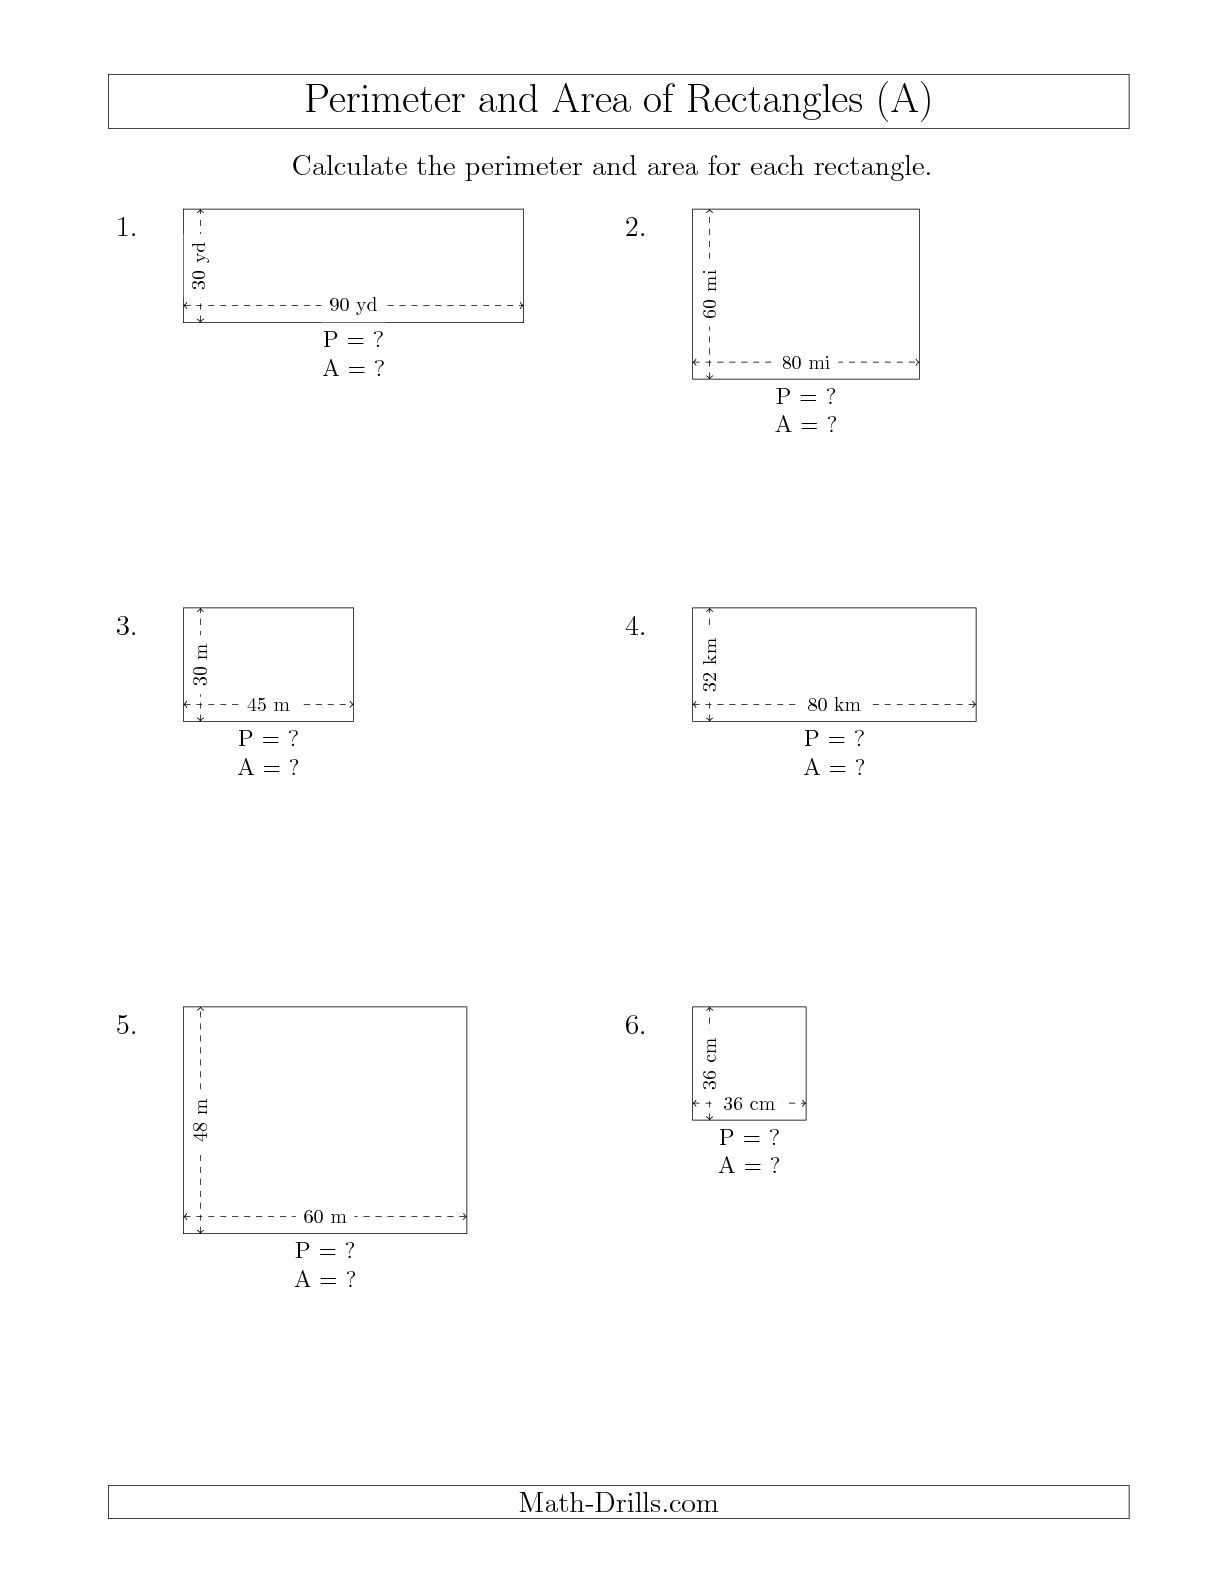 Calculating The Perimeter And Area Of Rectangles From Side Measurements Larger Whole Numbers